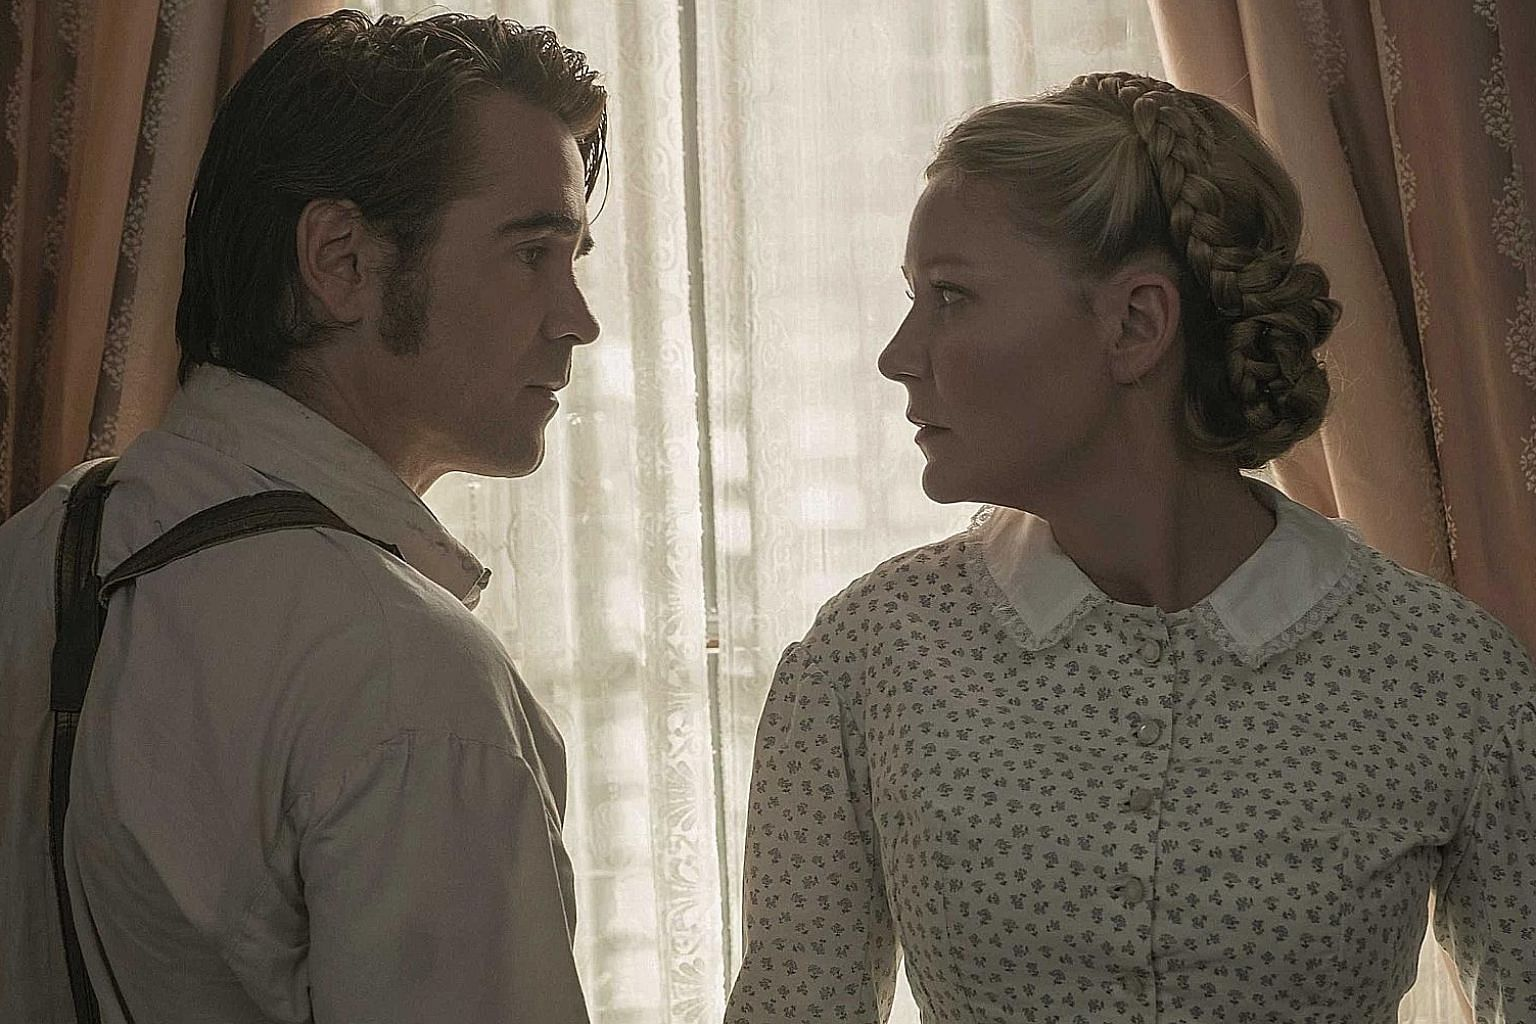 Colin Farrell plays an injured soldier and Kirsten Dunst is a disapproving teacher in The Beguiled.